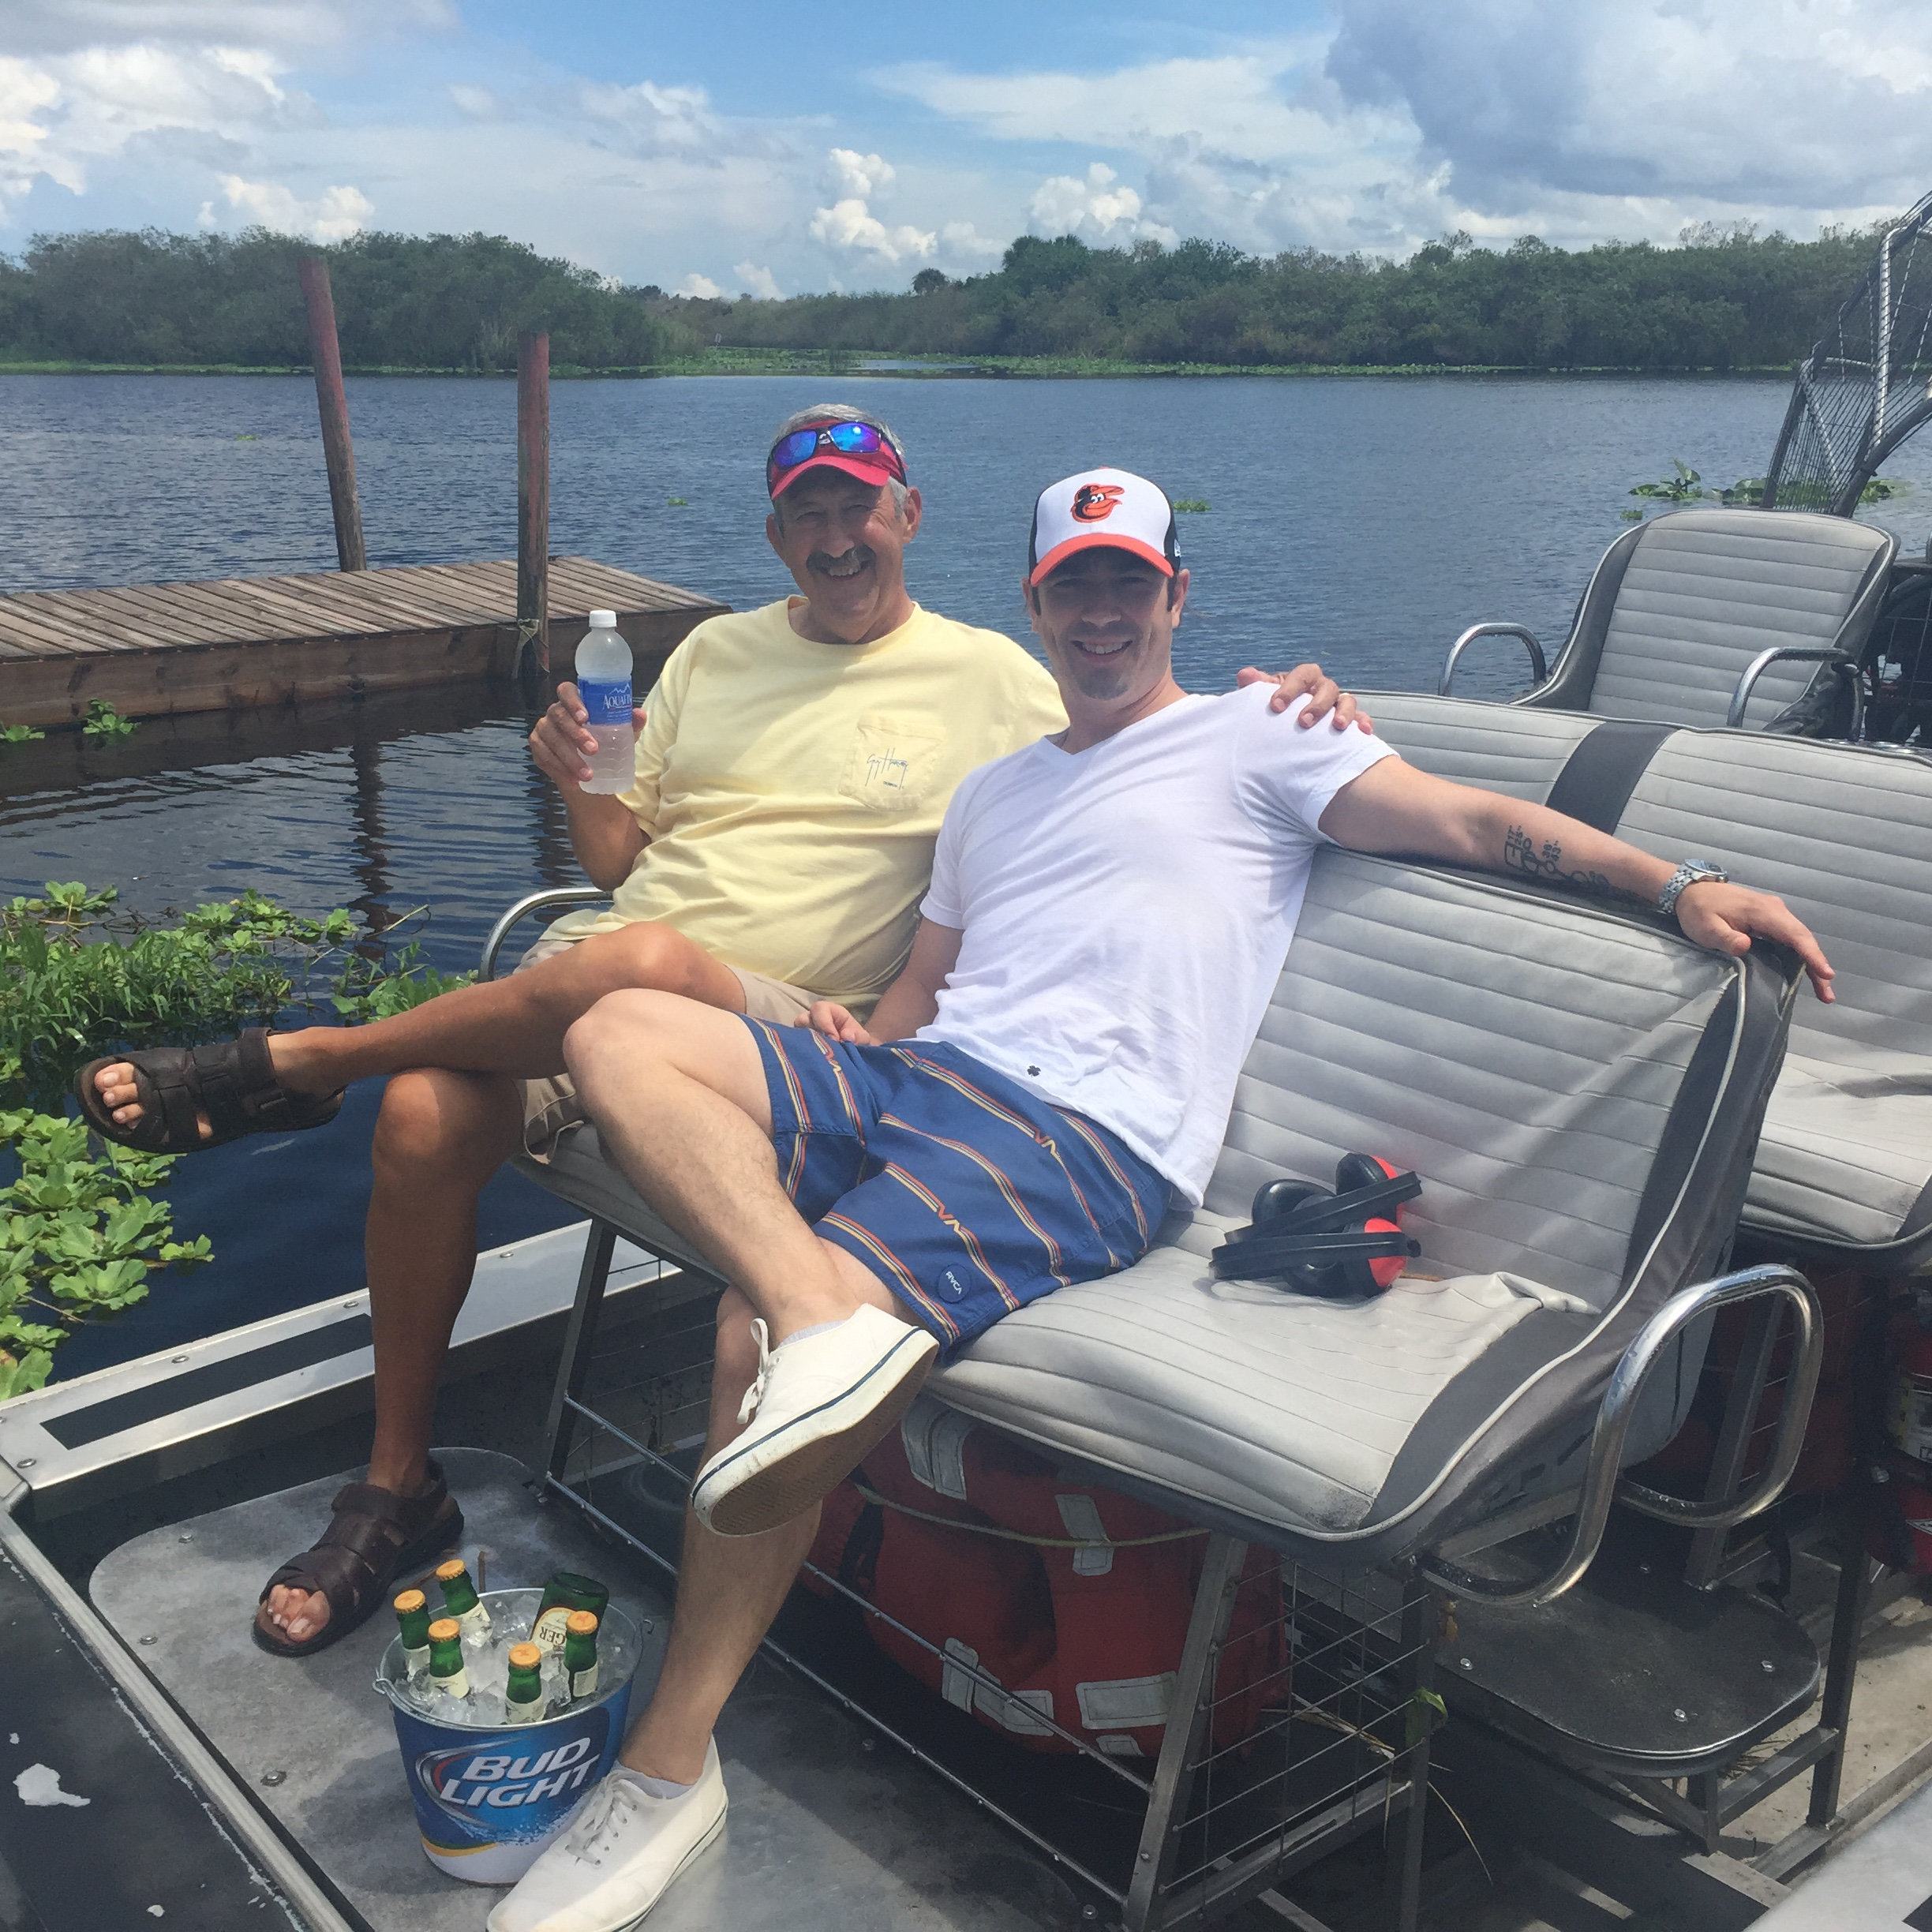 Uncle Mike and Danny doing it up Florida style.